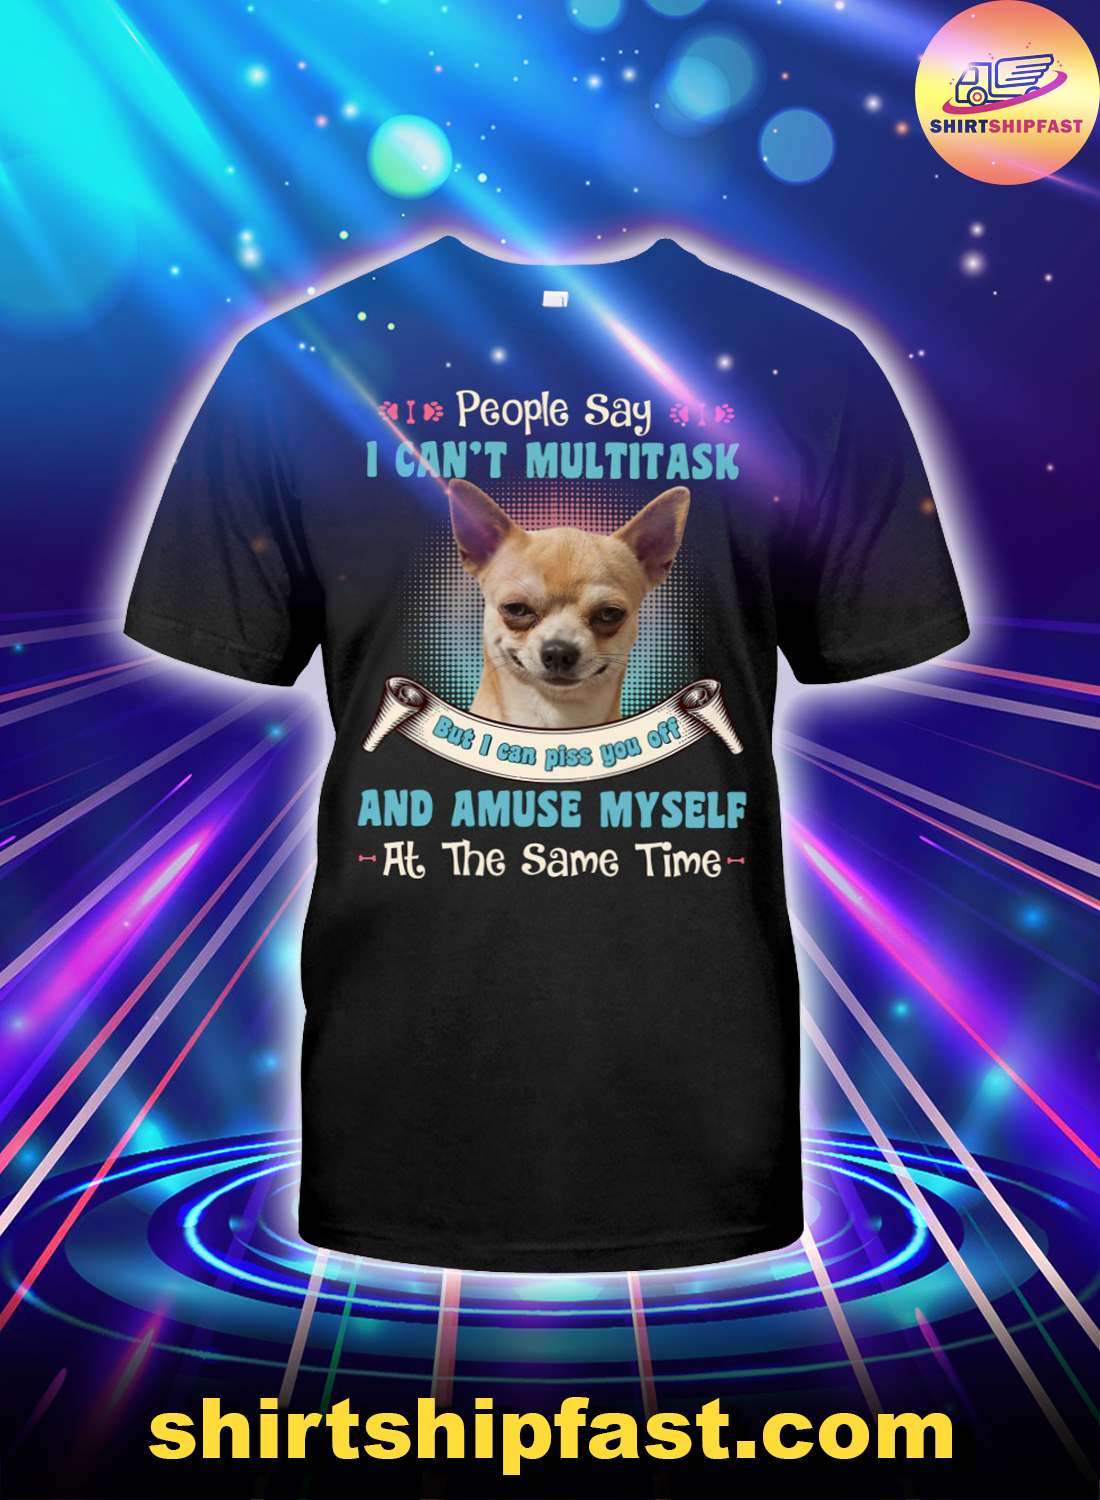 Chihuahua People say I can't multitask but I can piss you off shirt